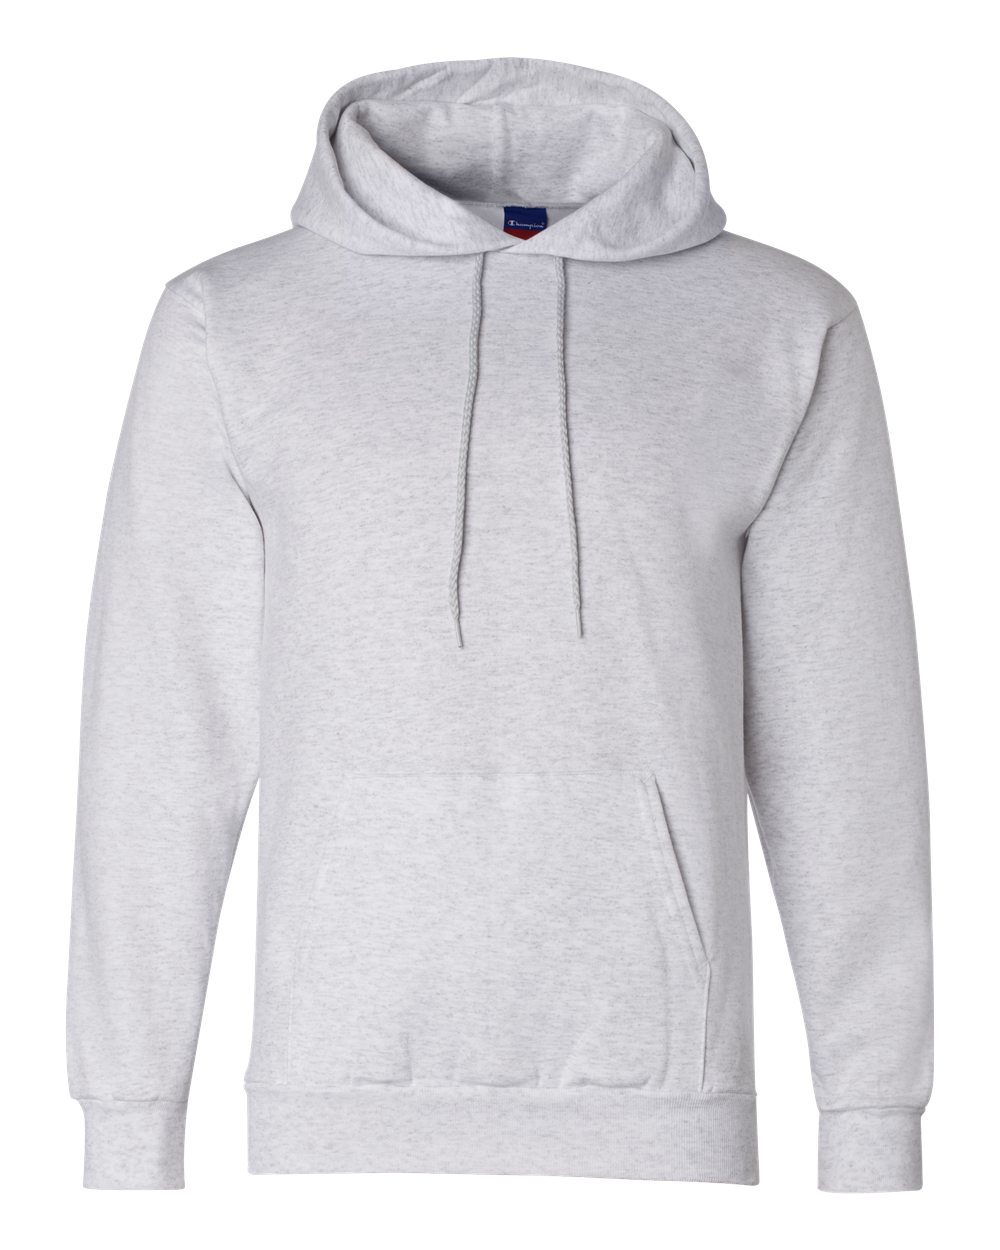 Champion-Mens-Double-Dry-Eco-Hooded-Sweatshirt-Hoodie-Pullover-S700-up-to-3XL miniature 42